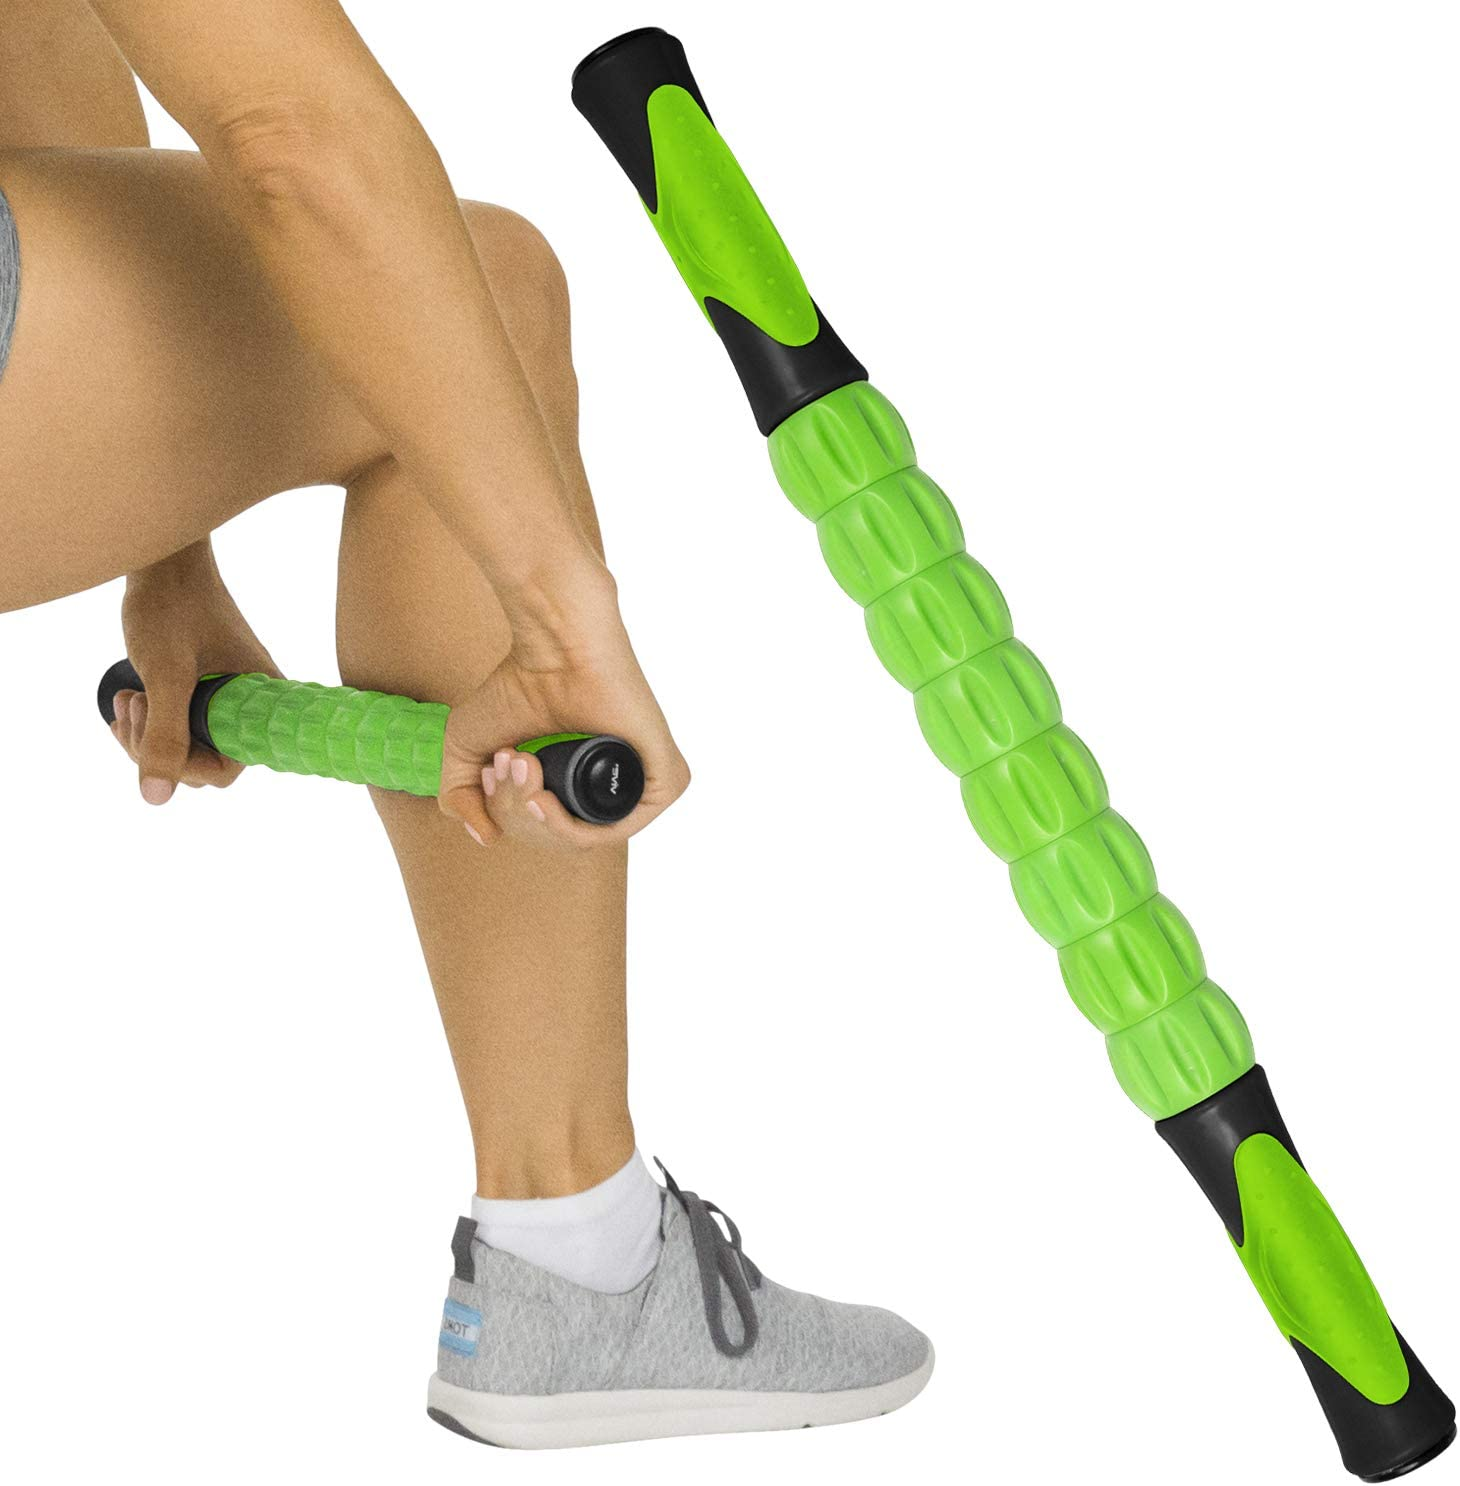 Leg and Back Recovery Massage Roller Stick for Exercise Runners and Dancers Body Therapy Massager Stick Tool for Relief Muscle Soreness Help Calf Muscle Roller Stick for Athletes Triggle Points